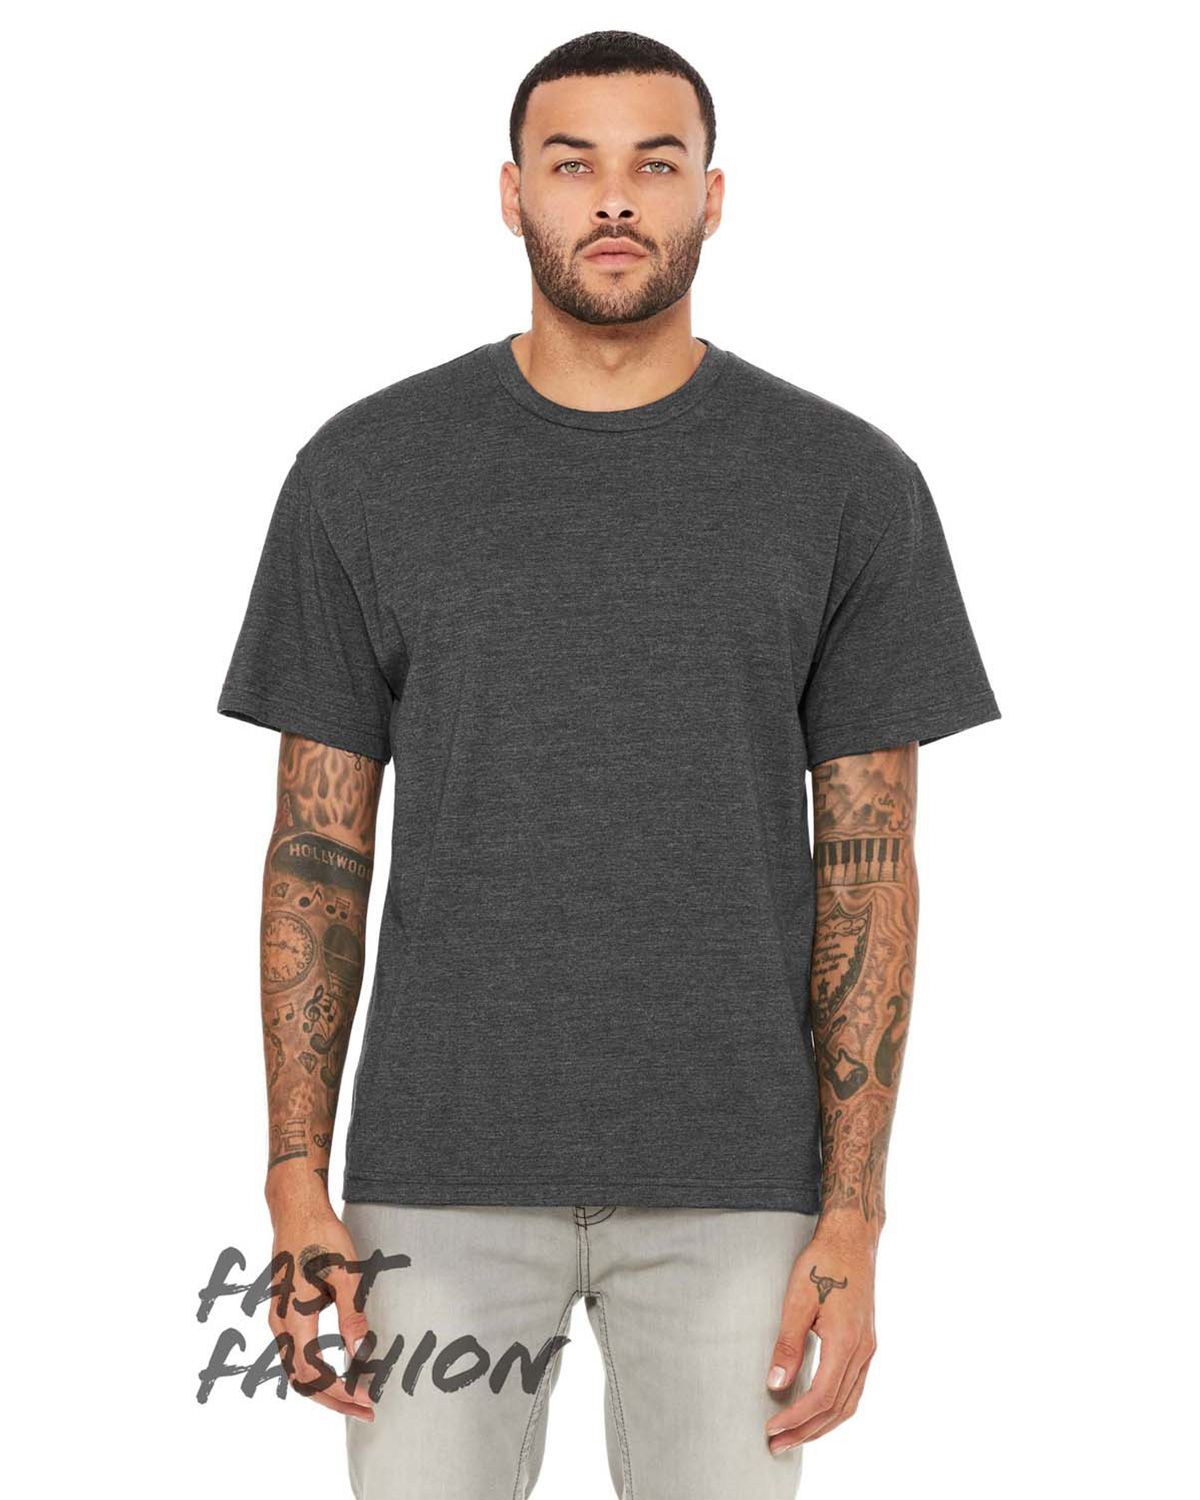 Bella + Canvas 3008C Men's Fast Fashion Drop Shoulder Street T-Shirt - Dark Gry Heather - M from Bella + Canvas